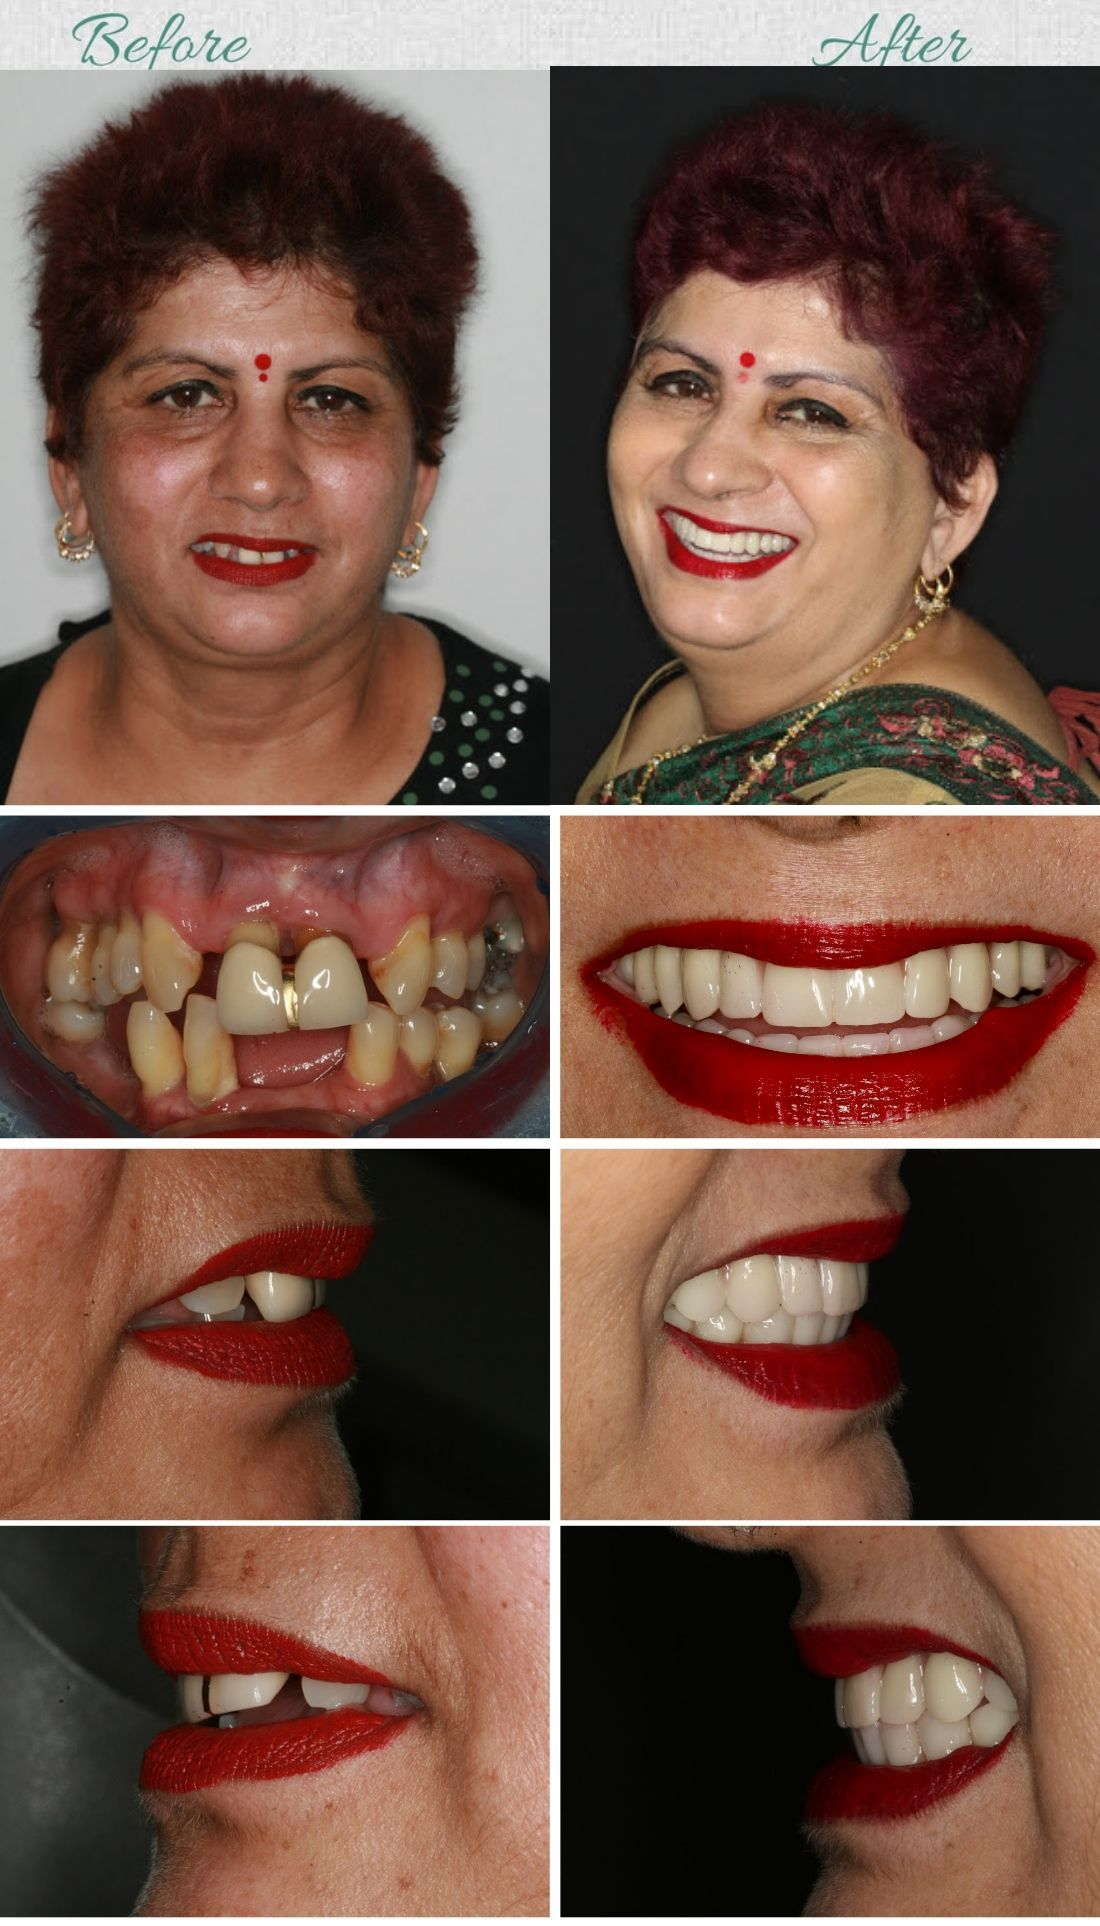 When to consider dental implants 2